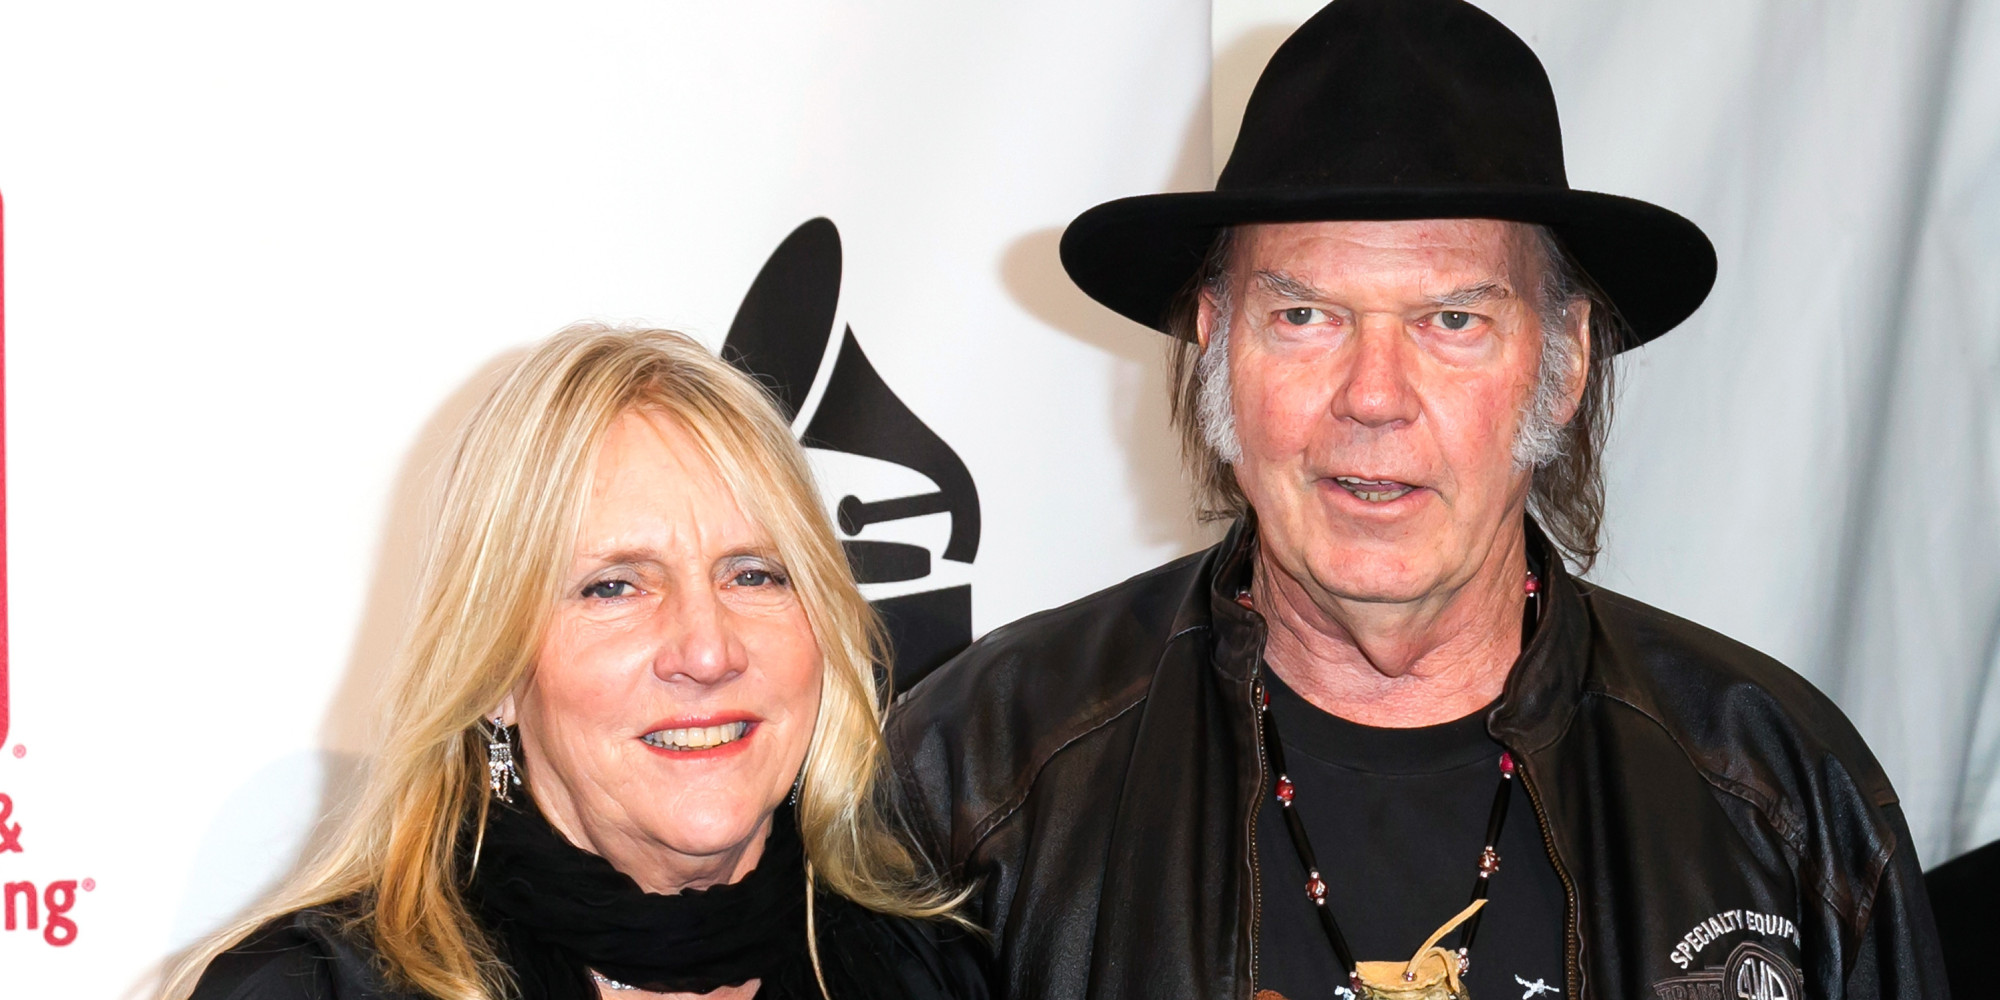 neil and pegi young divorce after 36 years of marriage